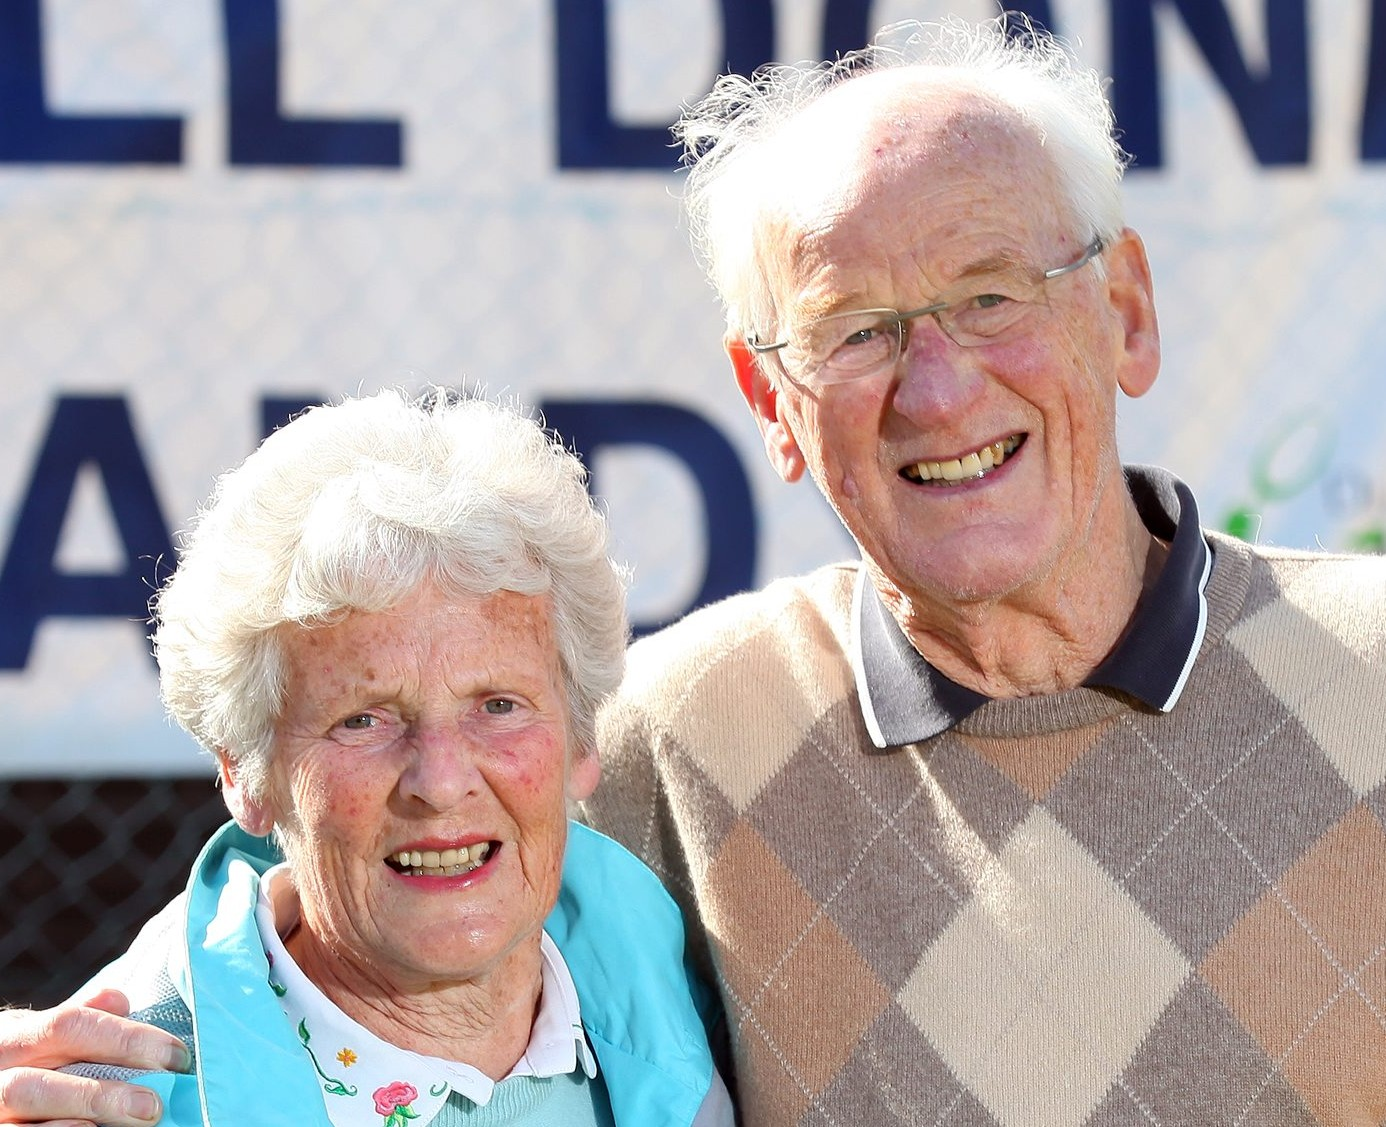 Andy Murray's grandparents Shirley and Roy Erskine at Dunblane Sports Centre in Murrays home town of Dunblane in Stirling